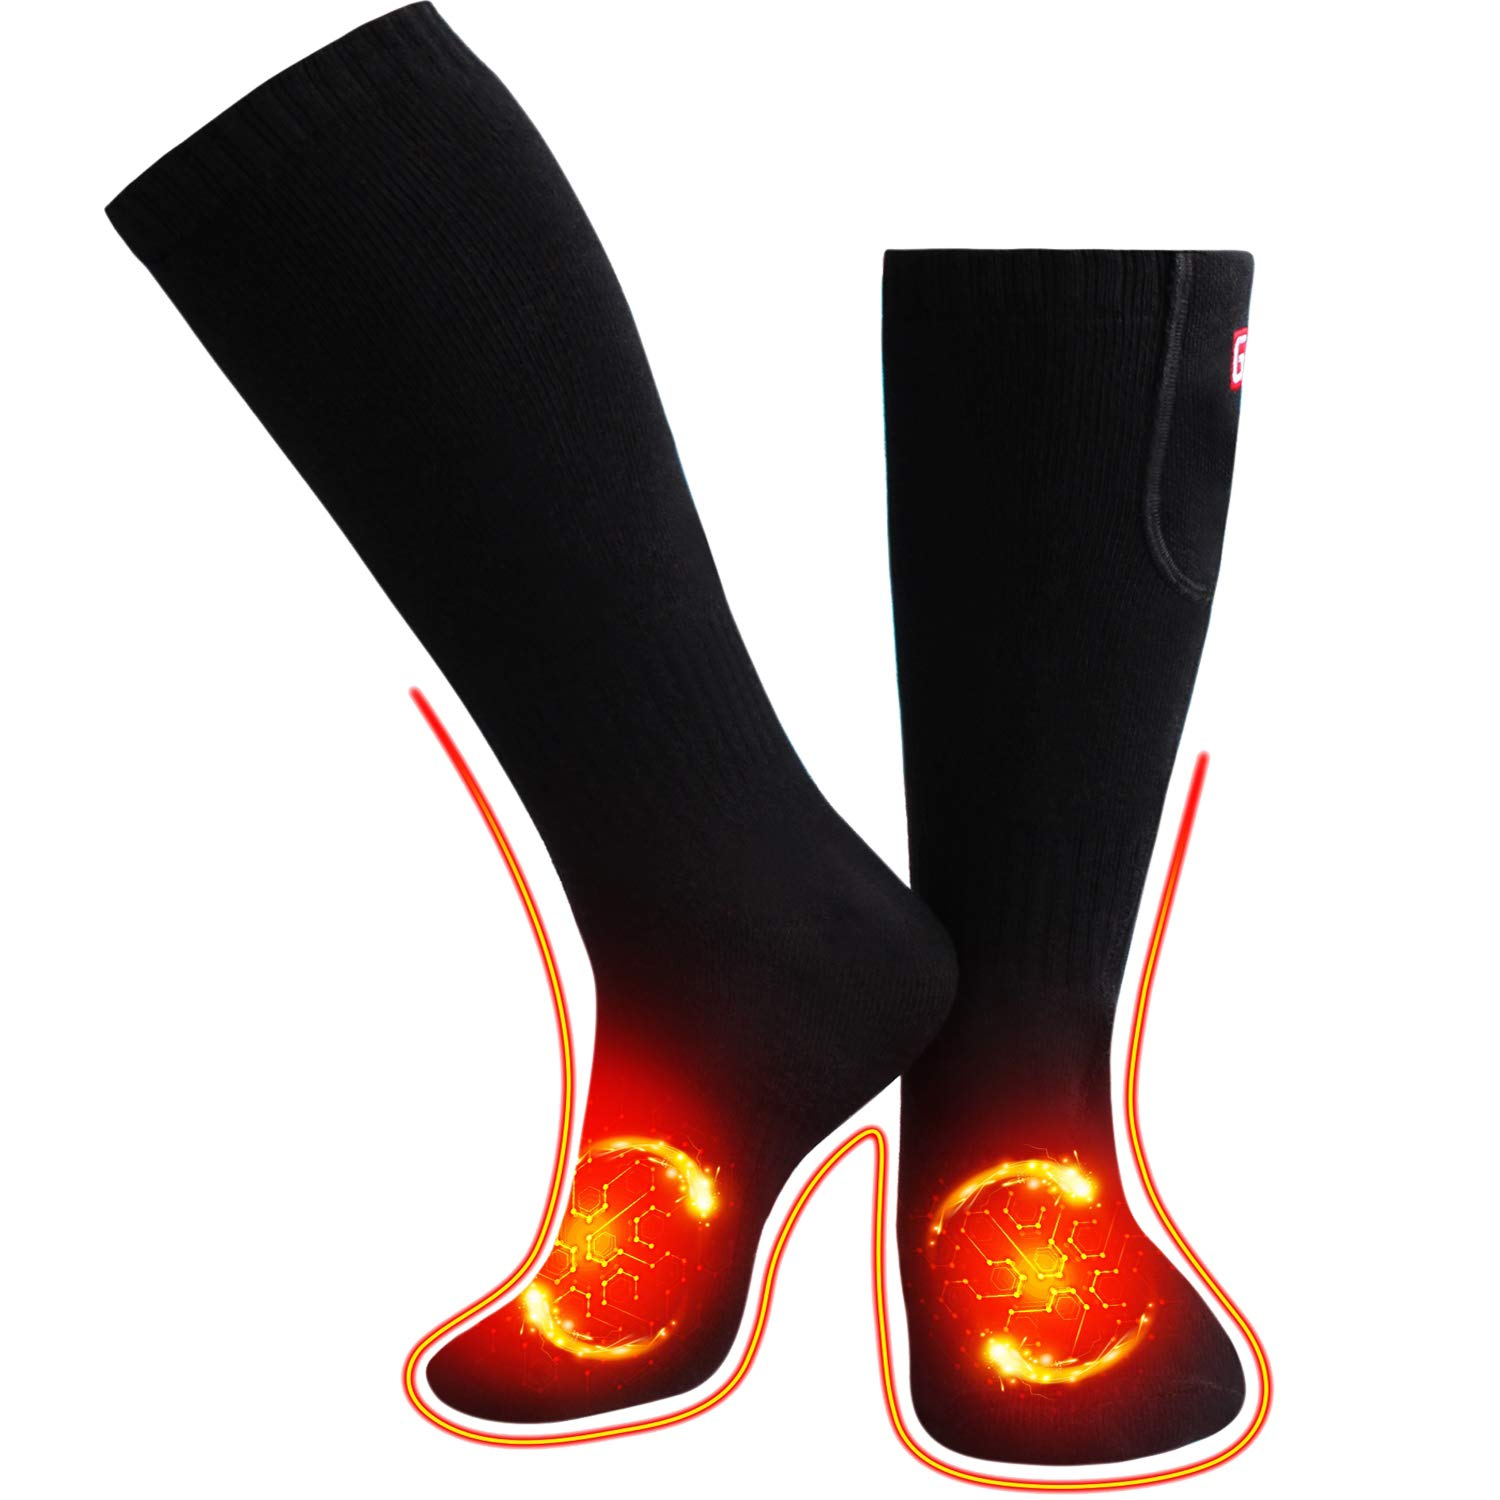 Rechargeable Heated Socks L M Size to Optional Battery Powered Heating Novelty Thermal Socks (BLACK, M) by QILOVE